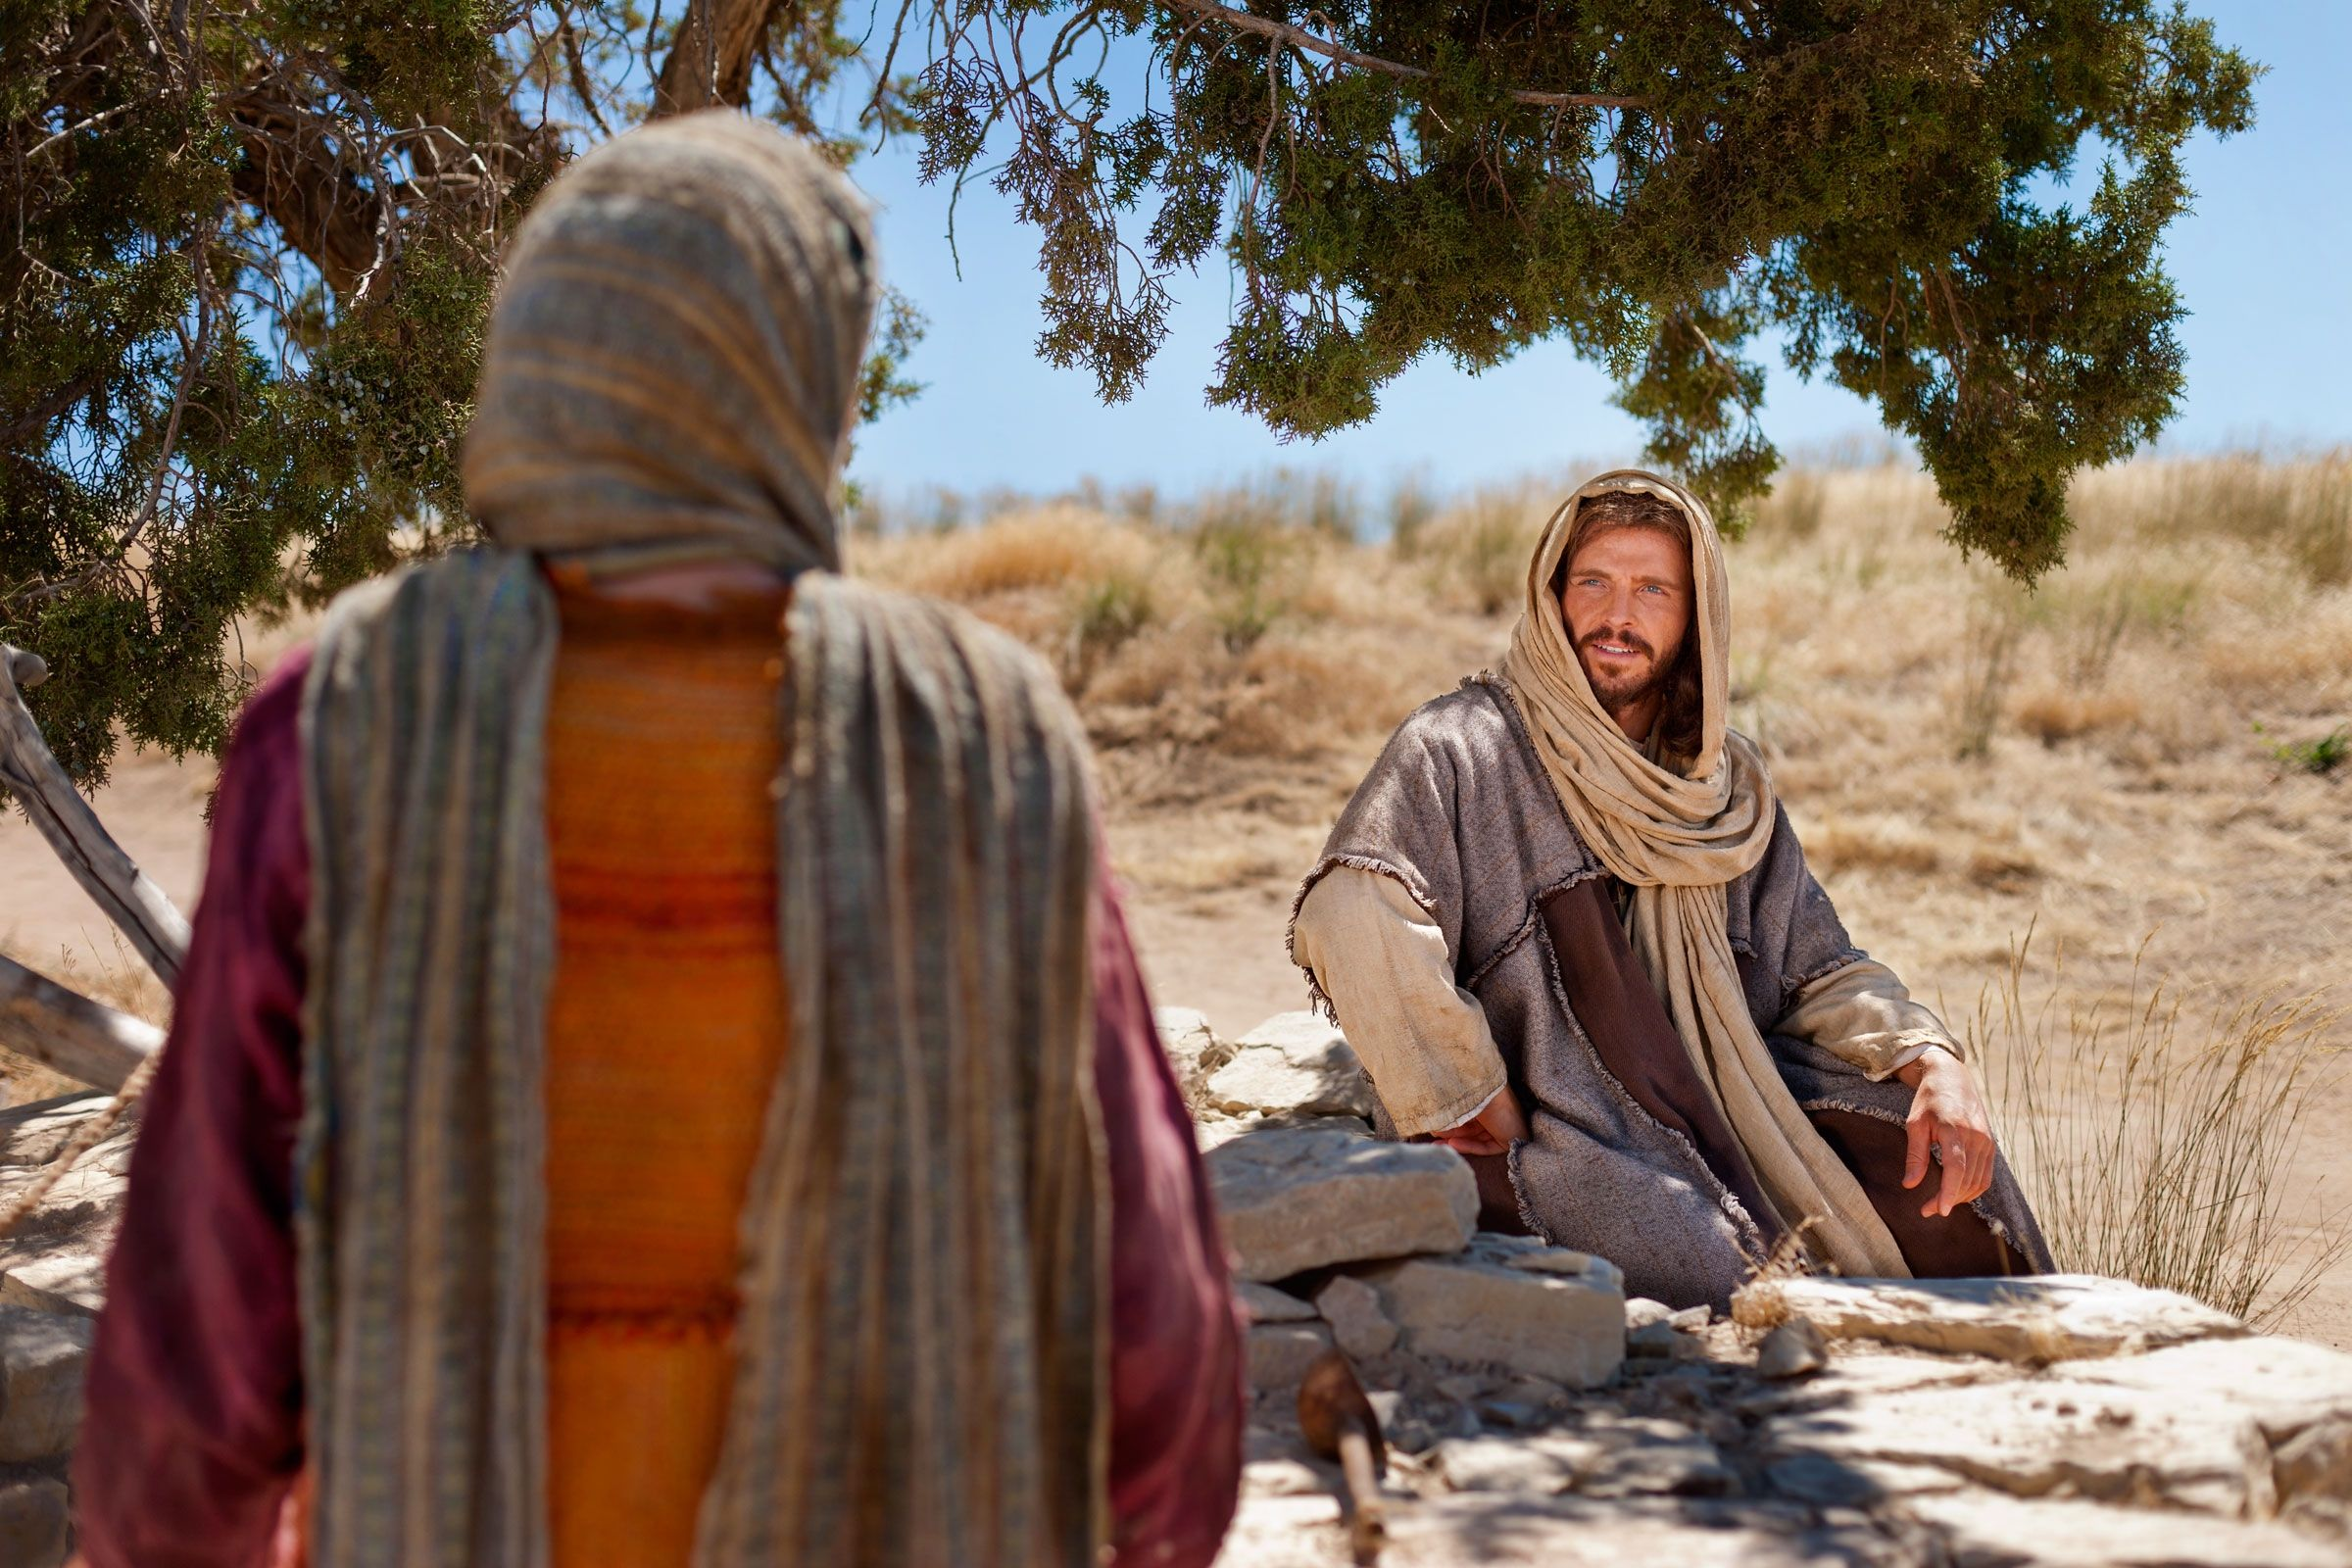 Jesus asks a Samaritan woman to give Him drink.